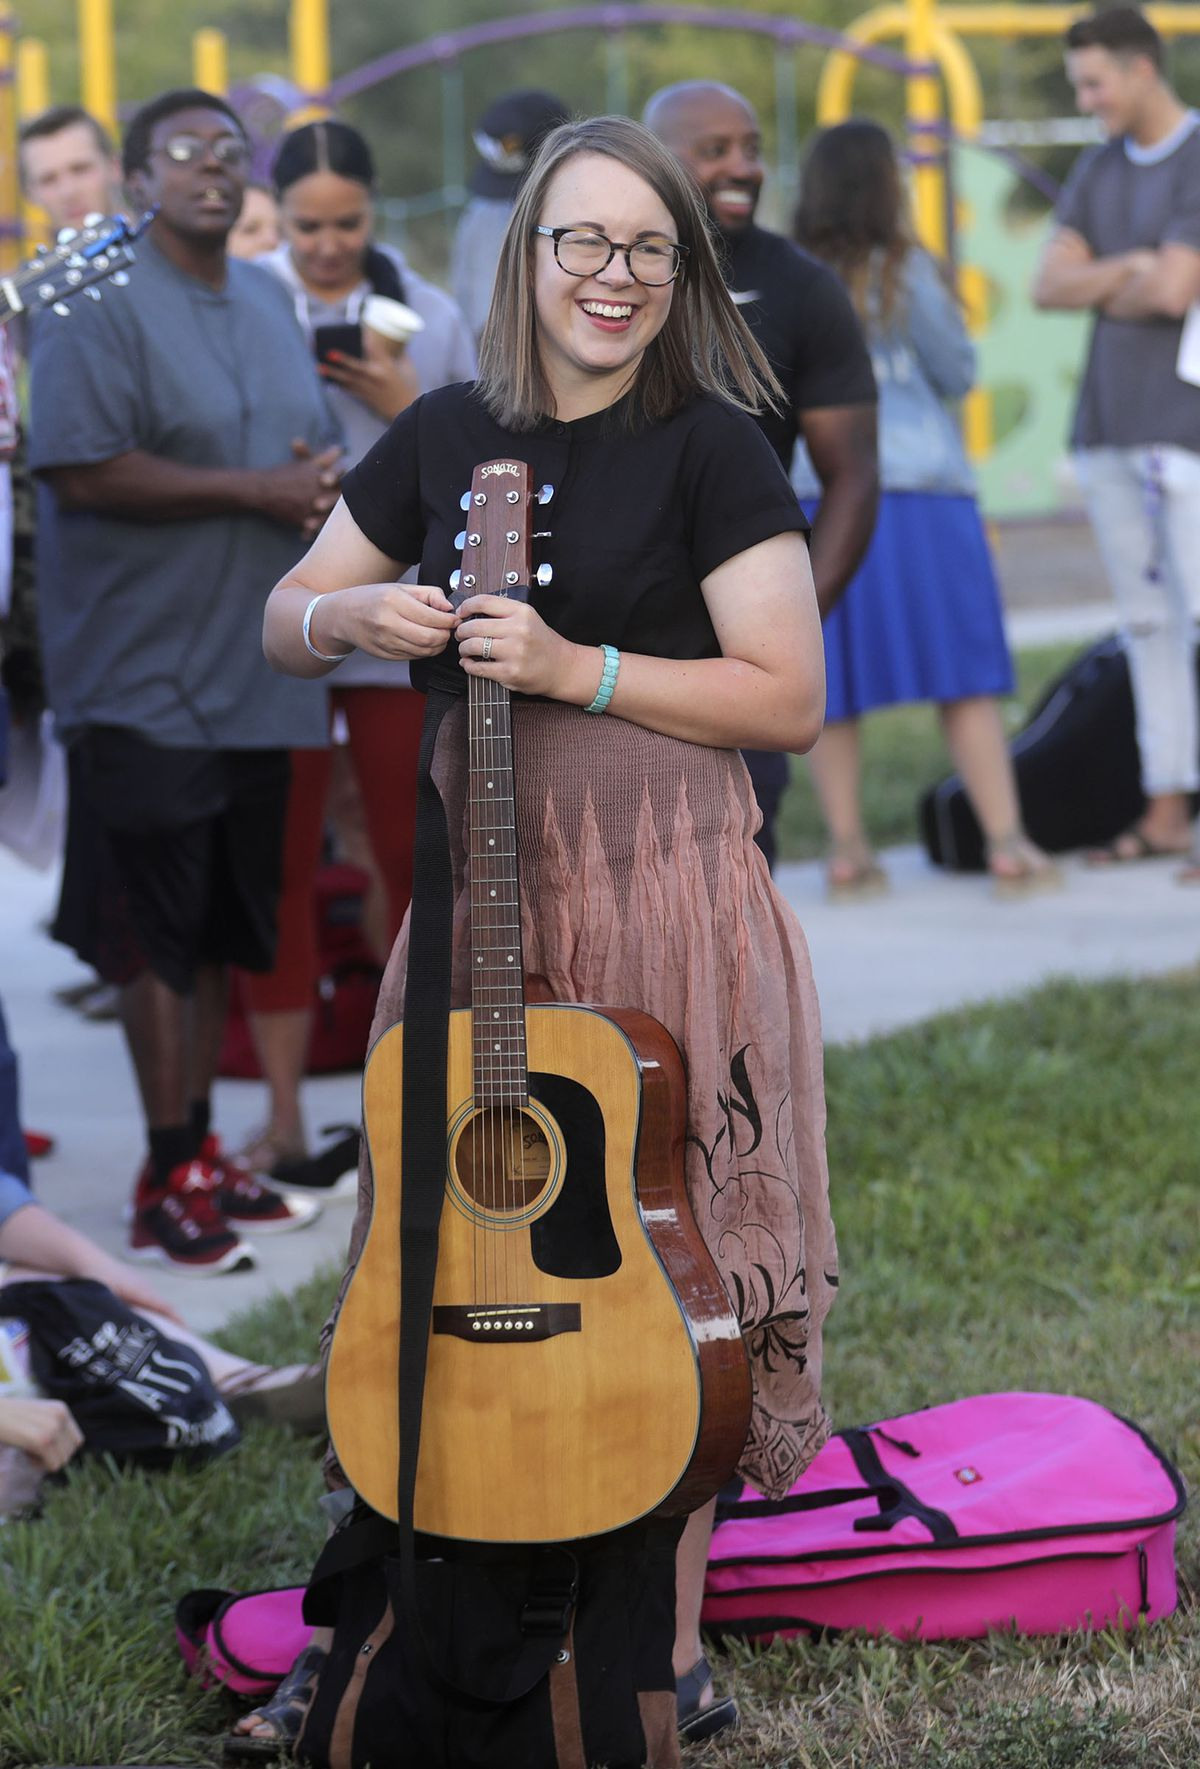 Lottie Johnson, Deseret News arts and entertainment assistant editor, picks up her guitar while waiting for American Idol auditions outside of the Northwest Community Center in Salt Lake City on Thursday, Aug. 29, 2019.